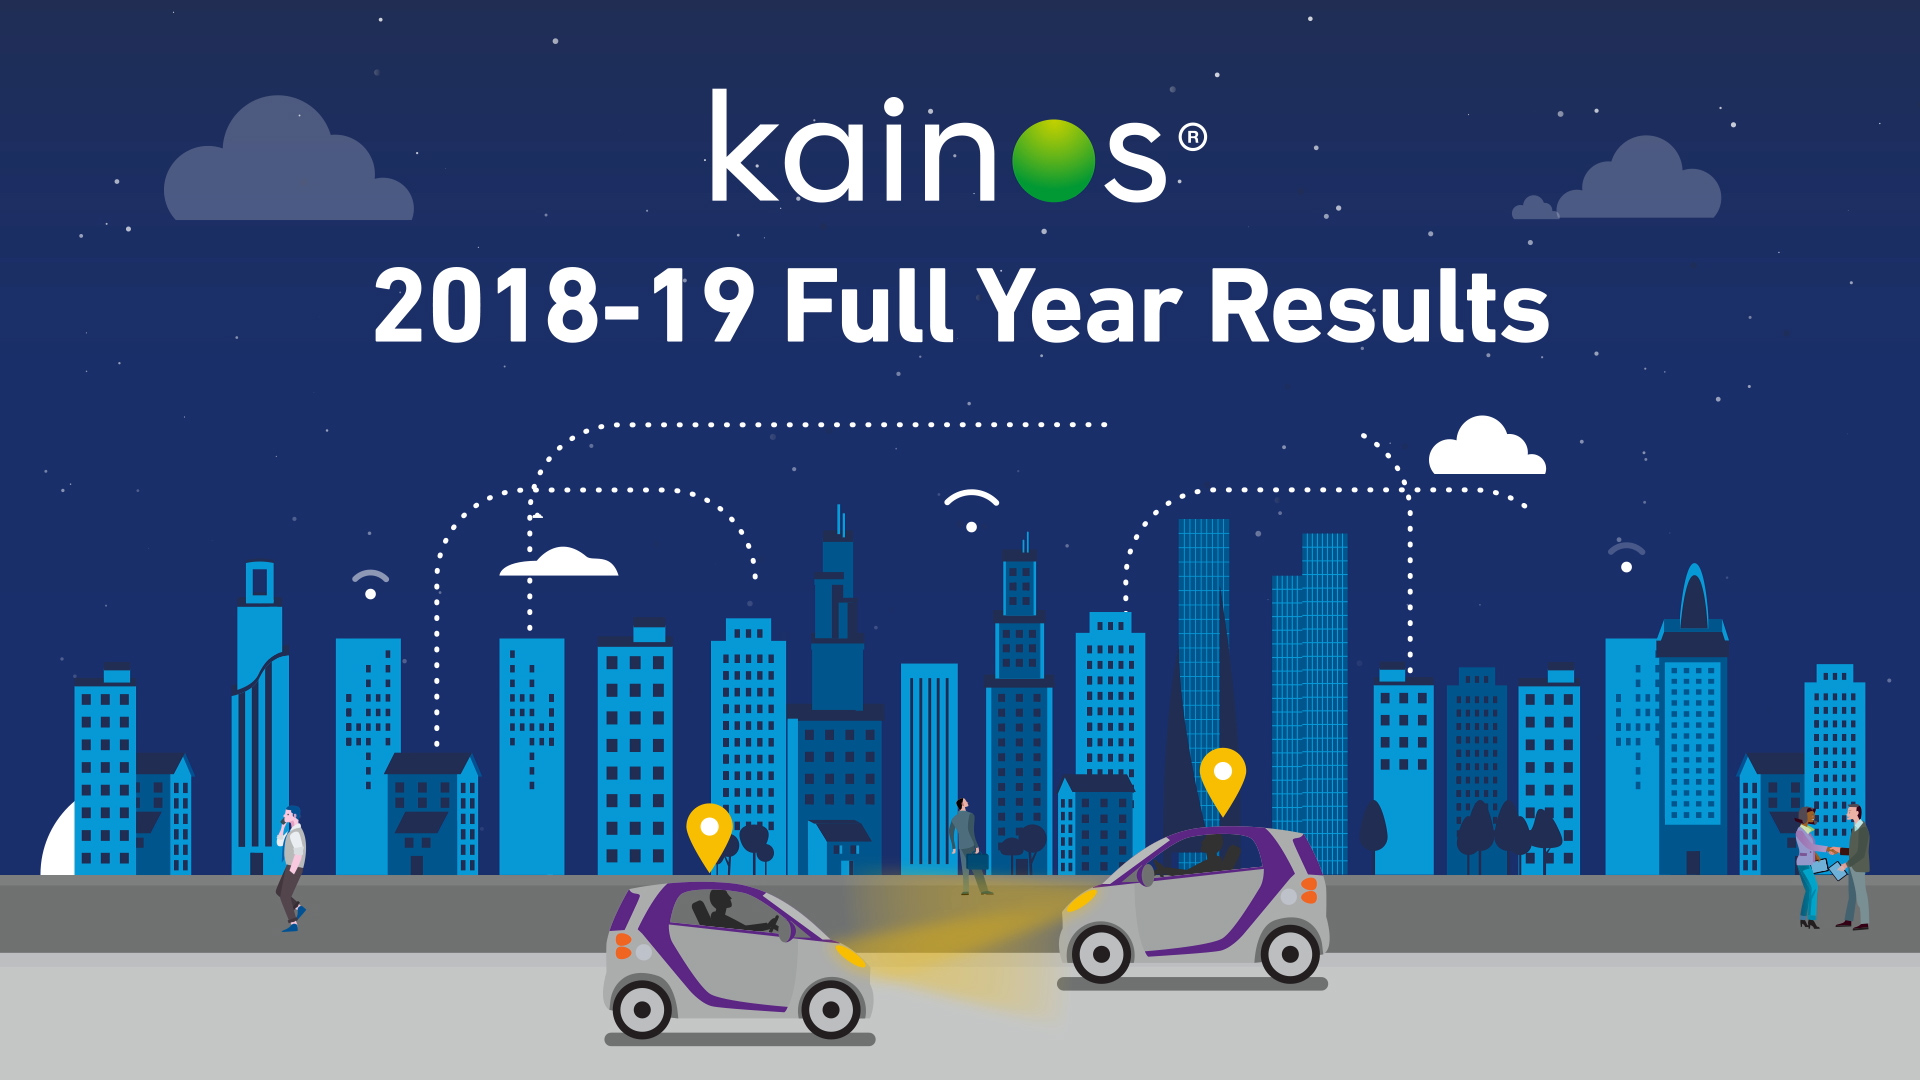 Kainos announces 2018 19 results